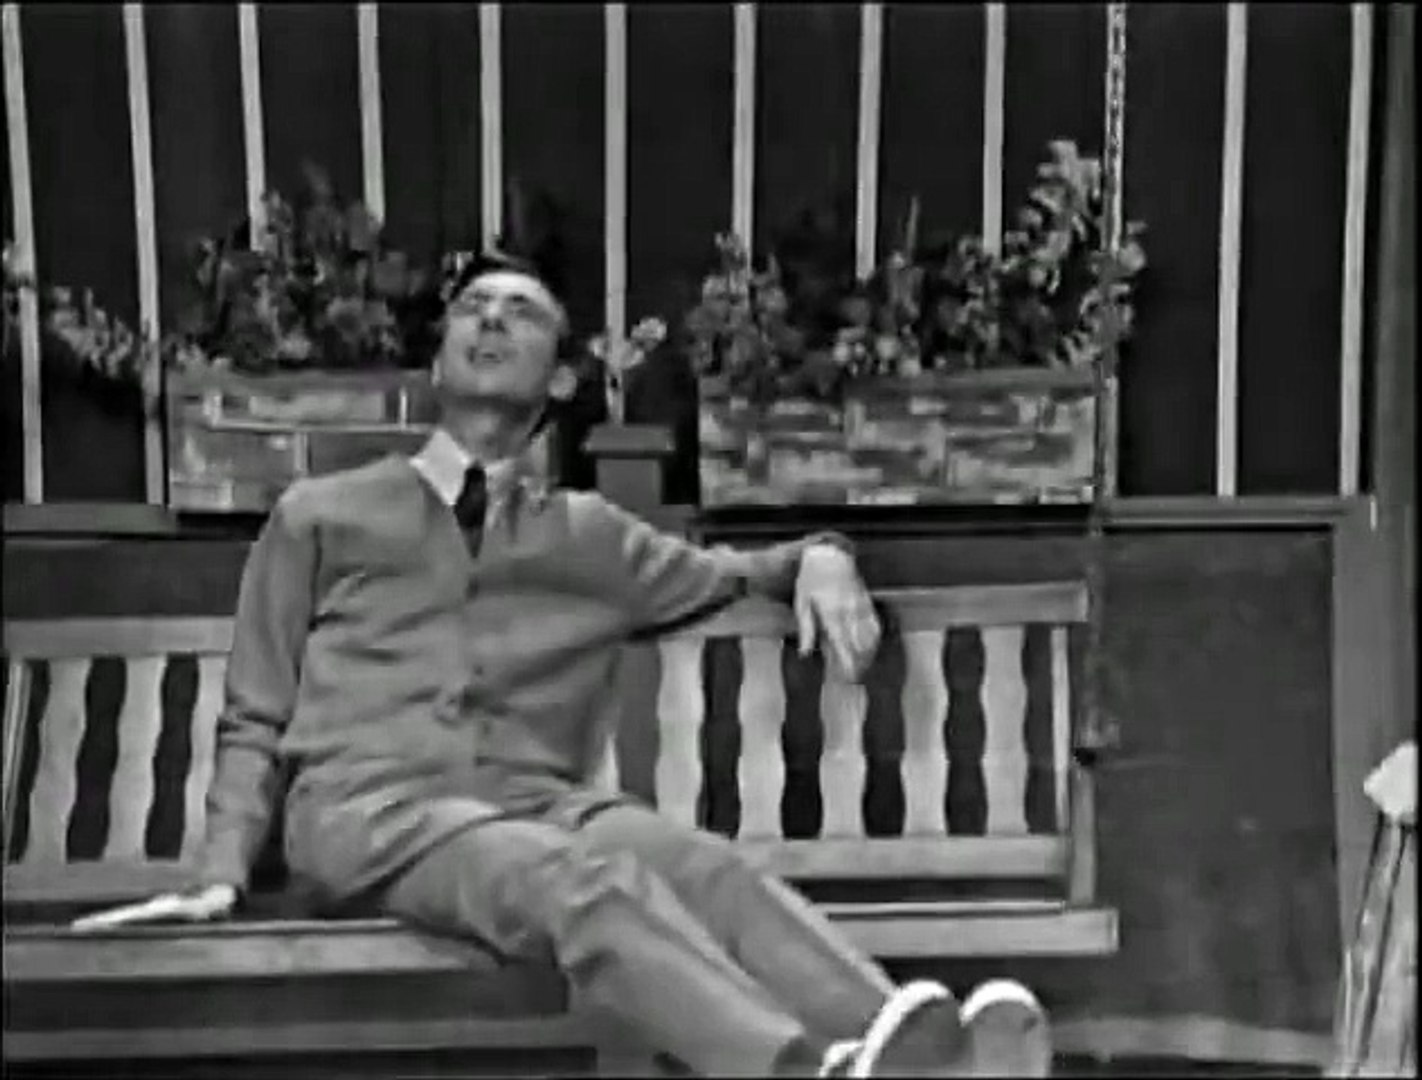 Mister Rogers Neighborhood S01e001 1 The First Program 1967 Black White Video Dailymotion